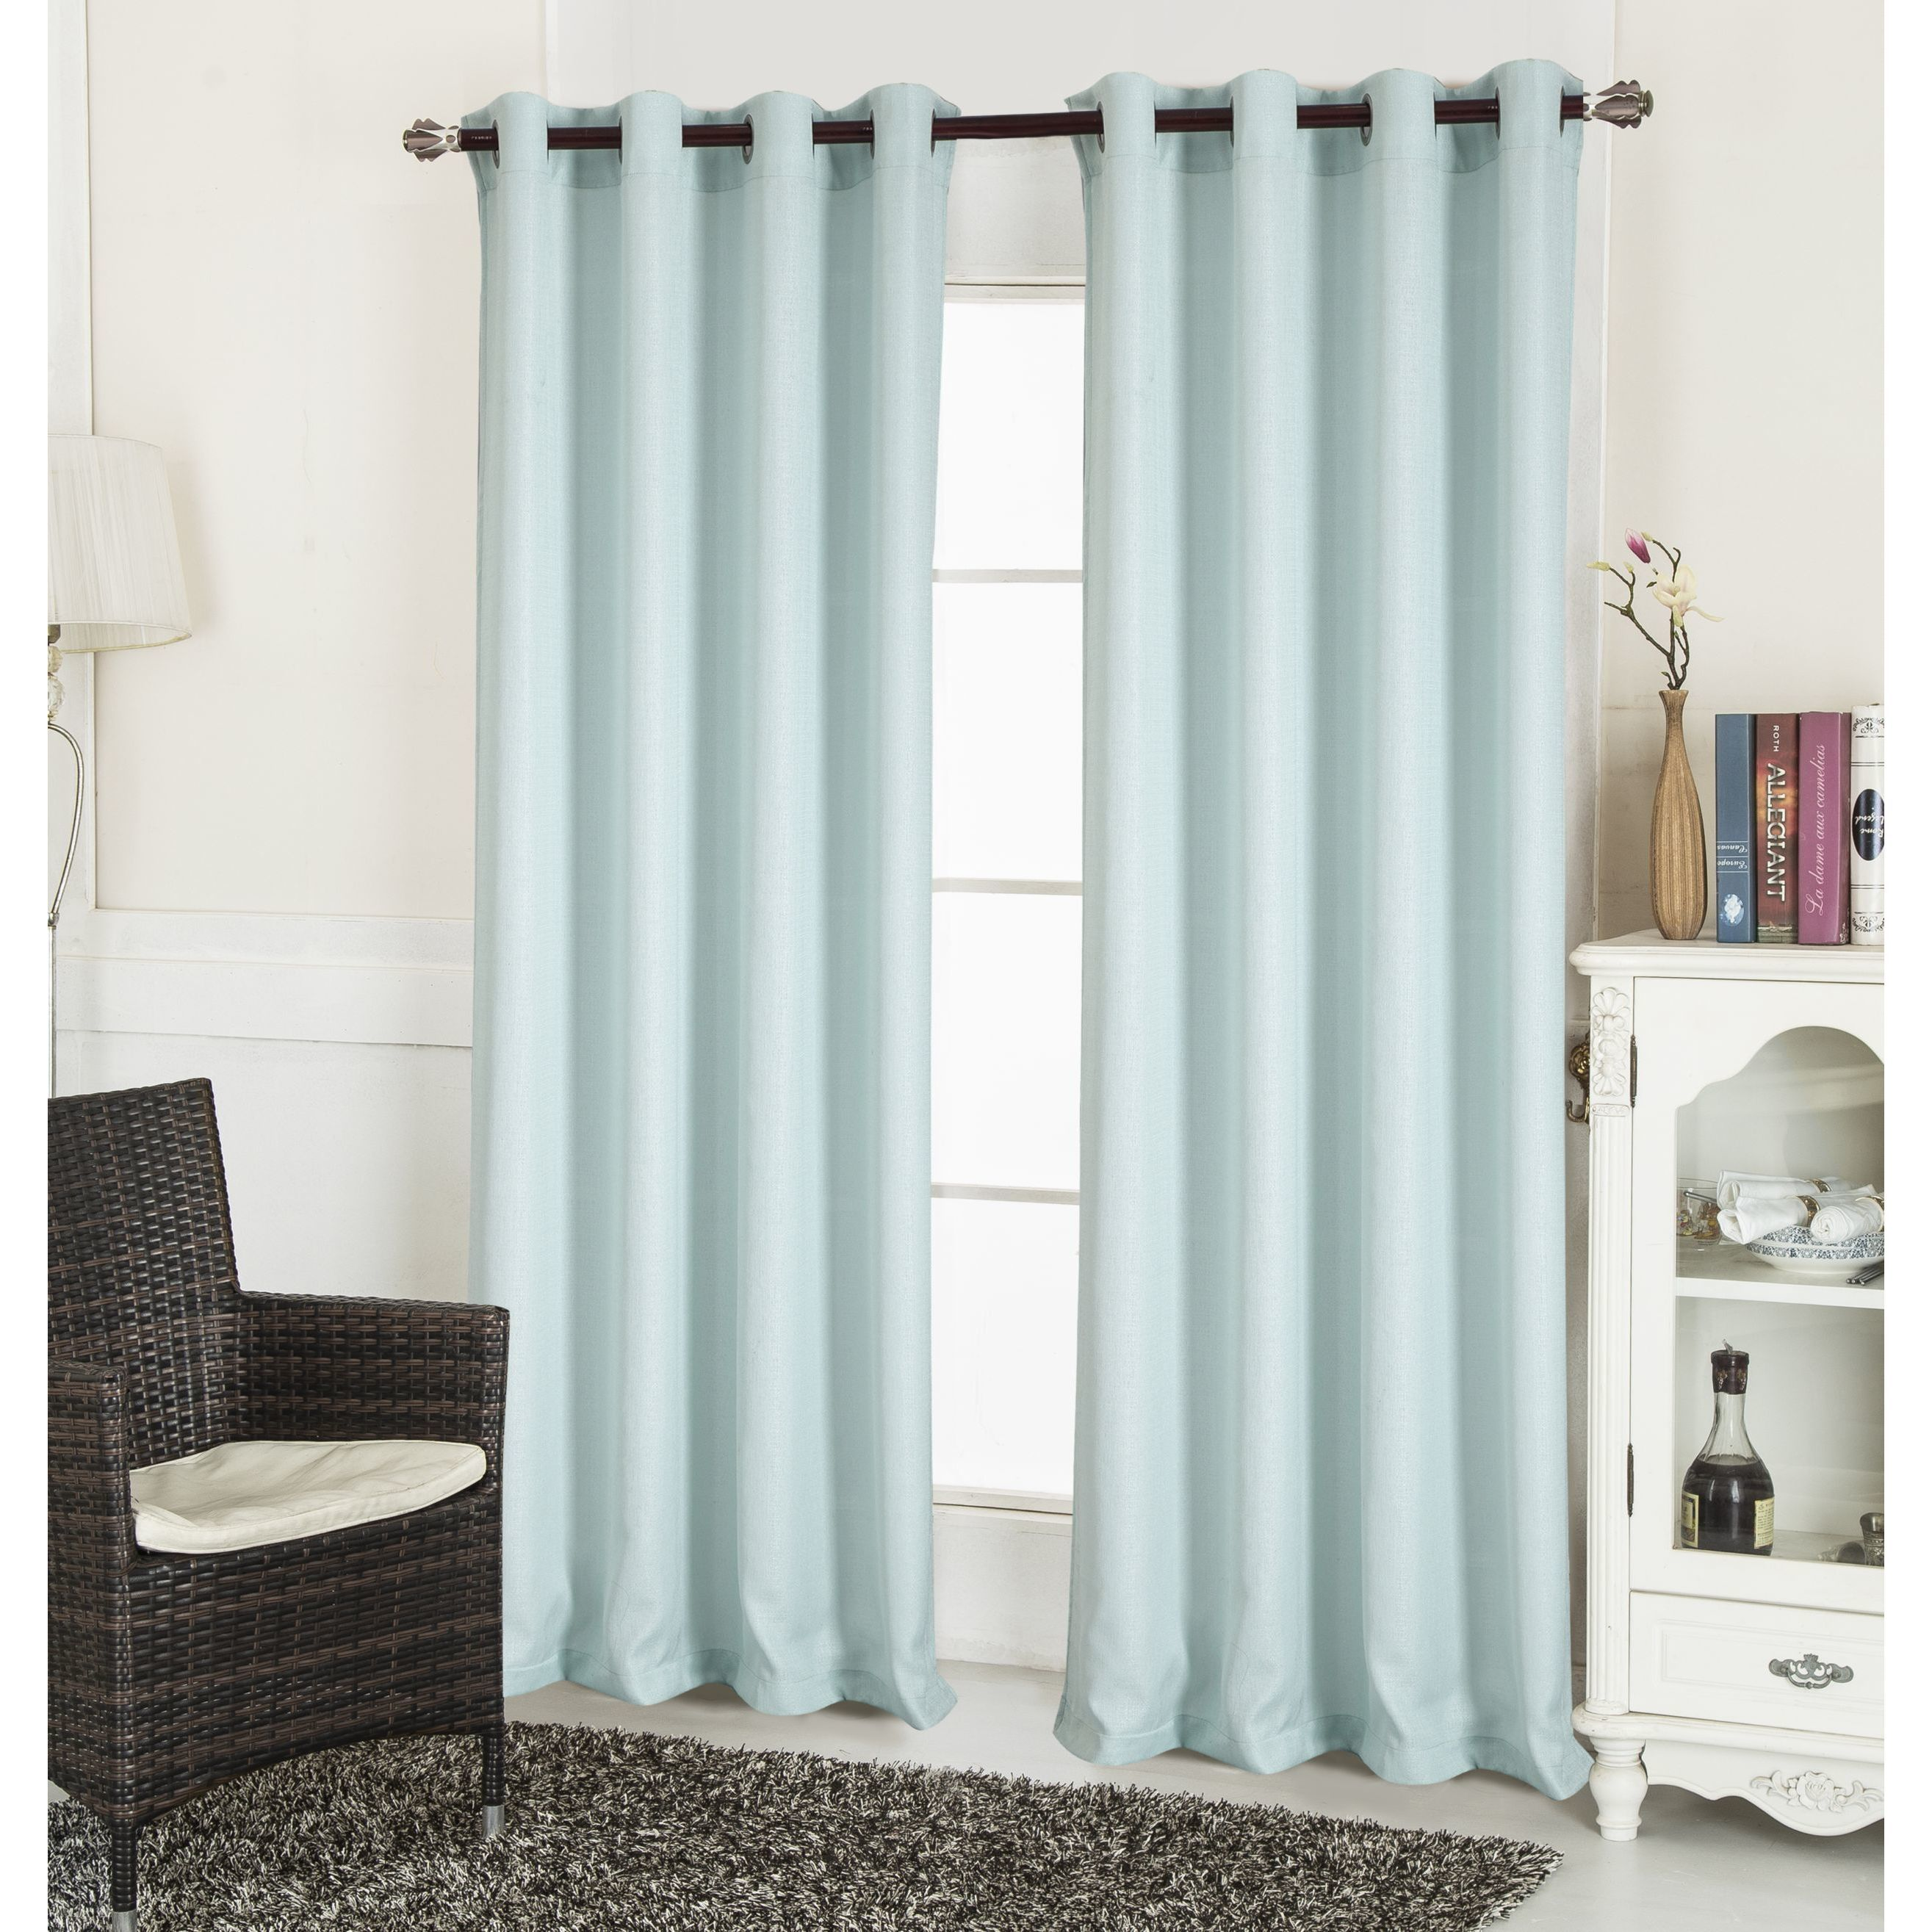 inspirations good off white full photos size gray drapes curtains ideas less window of overstock patterns glittering treatments com for with bathroom